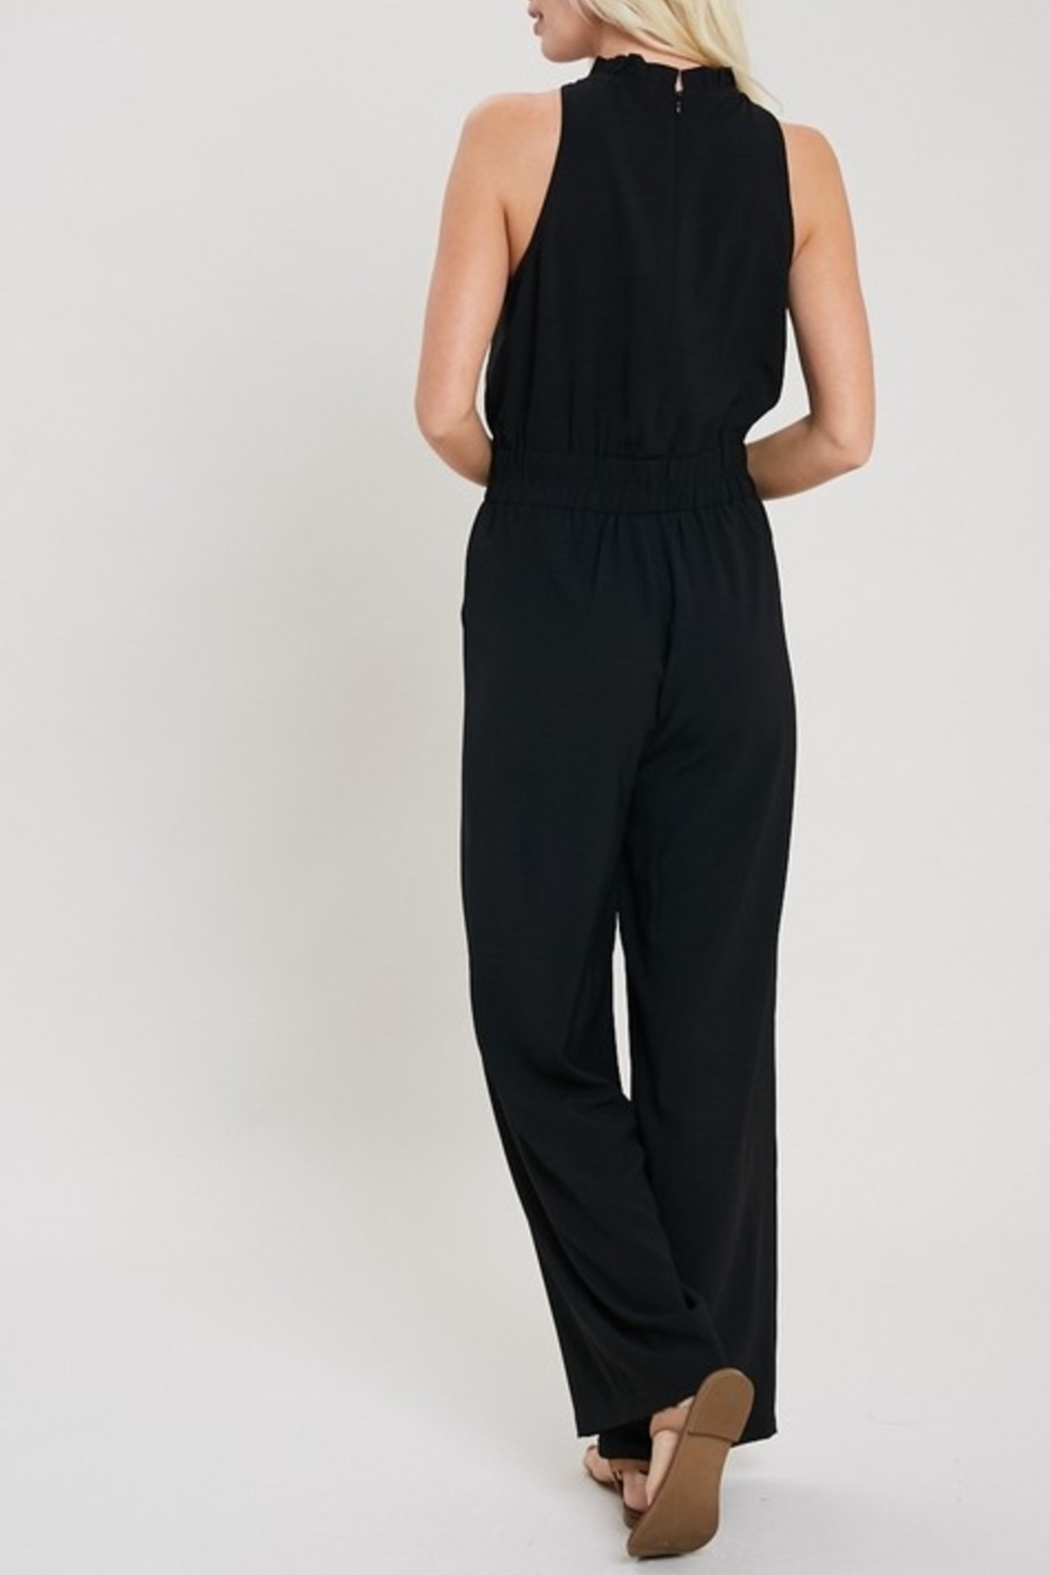 ee:some Simple Love jumpsuit - Front Full Image